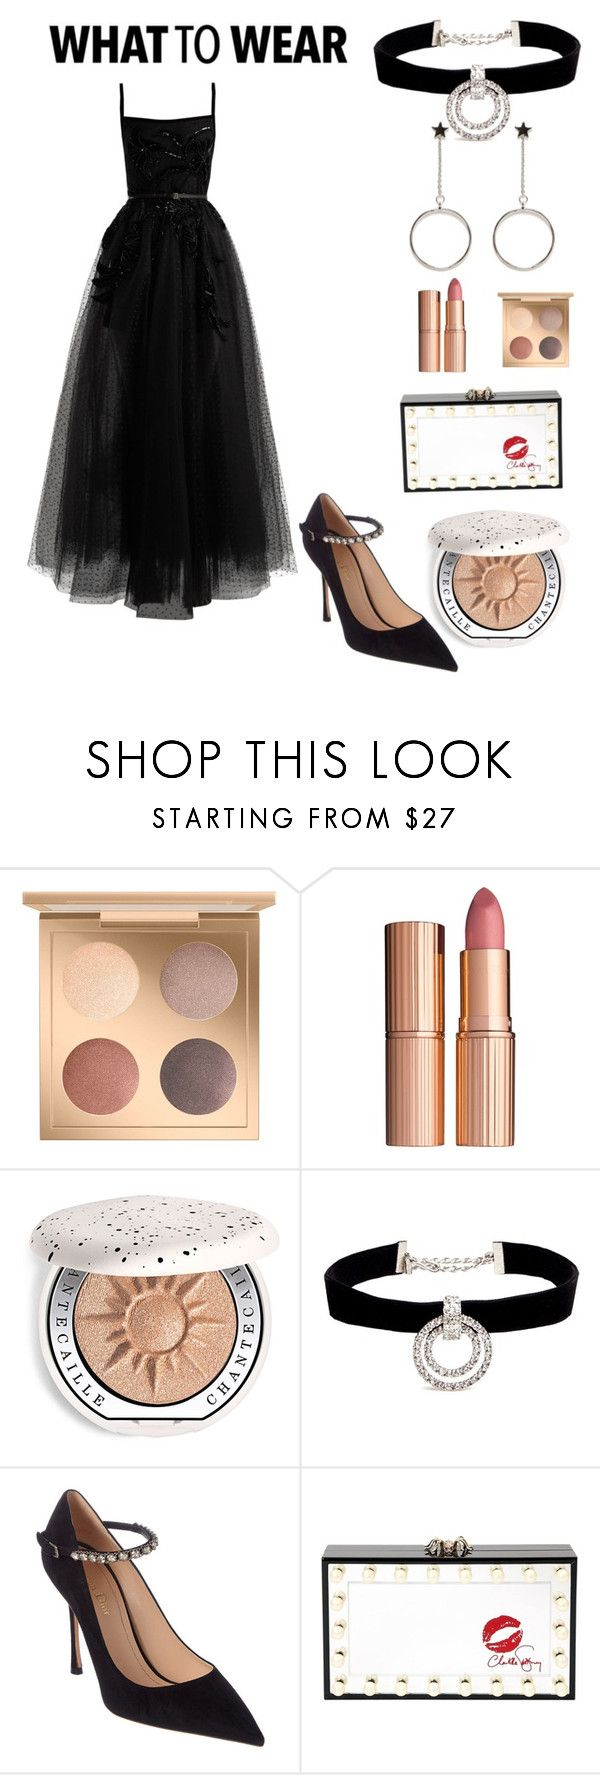 """Party look #41"" by atheer-althu ❤ liked on Polyvore featuring MAC Cosmetics, Charlotte Tilbury, Chantecaille, Kenneth Jay Lane, Christian Dior, Charlotte Olympia and Elie Saab"